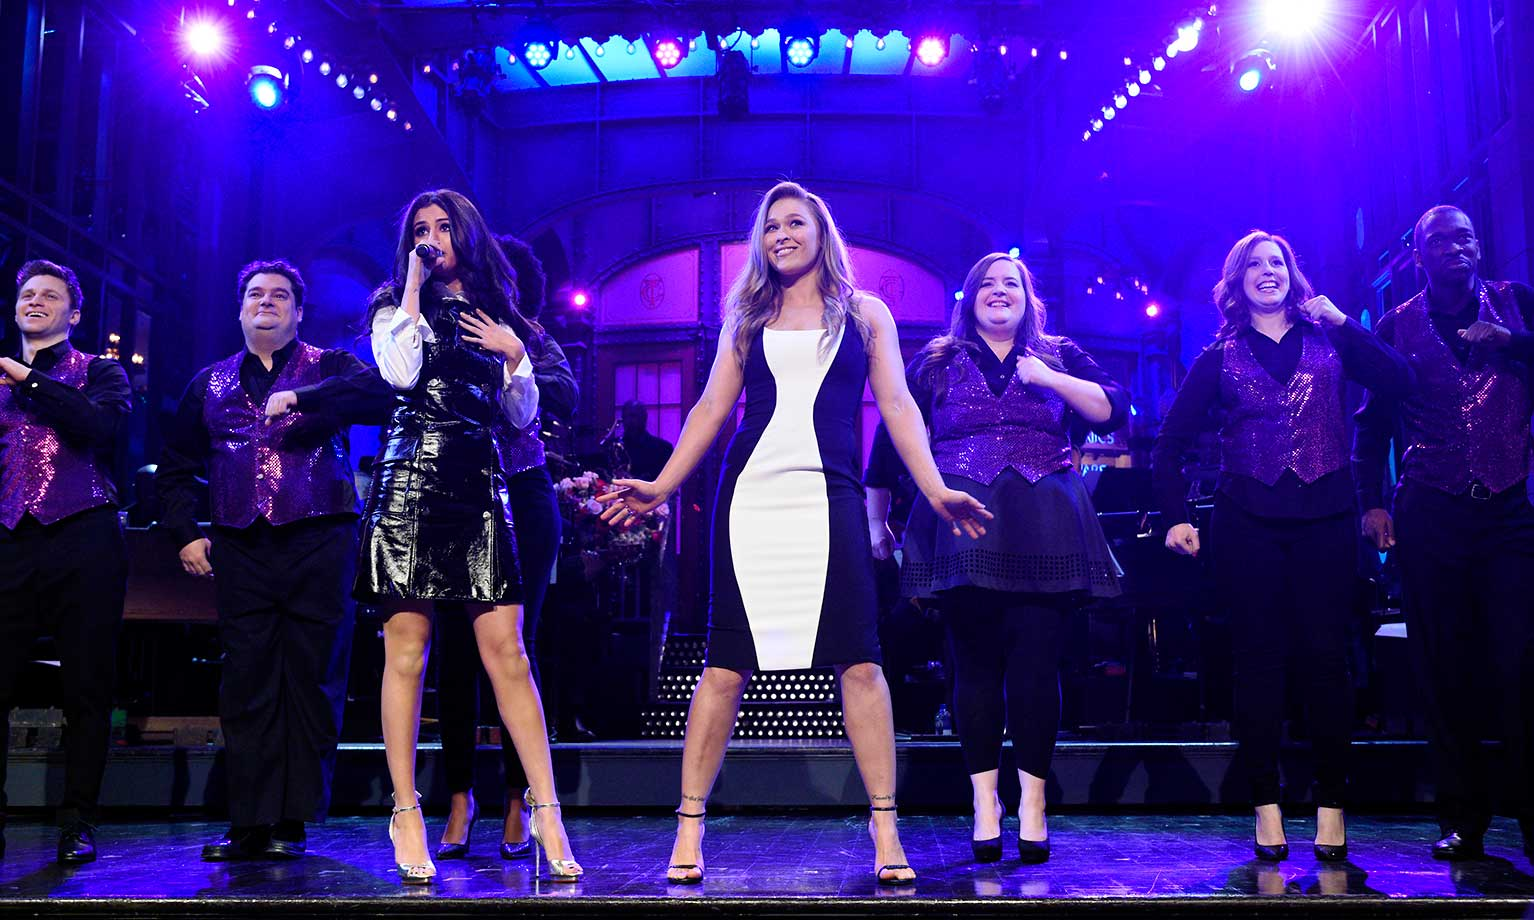 Ronda Rousey with SNL participants (from left) Jon Rudnitsky, Bobby Moynihan, Selena Gomez, Rousey, Aidy Bryant, Vanessa Bayer and Jay Pharoah during the monologue.